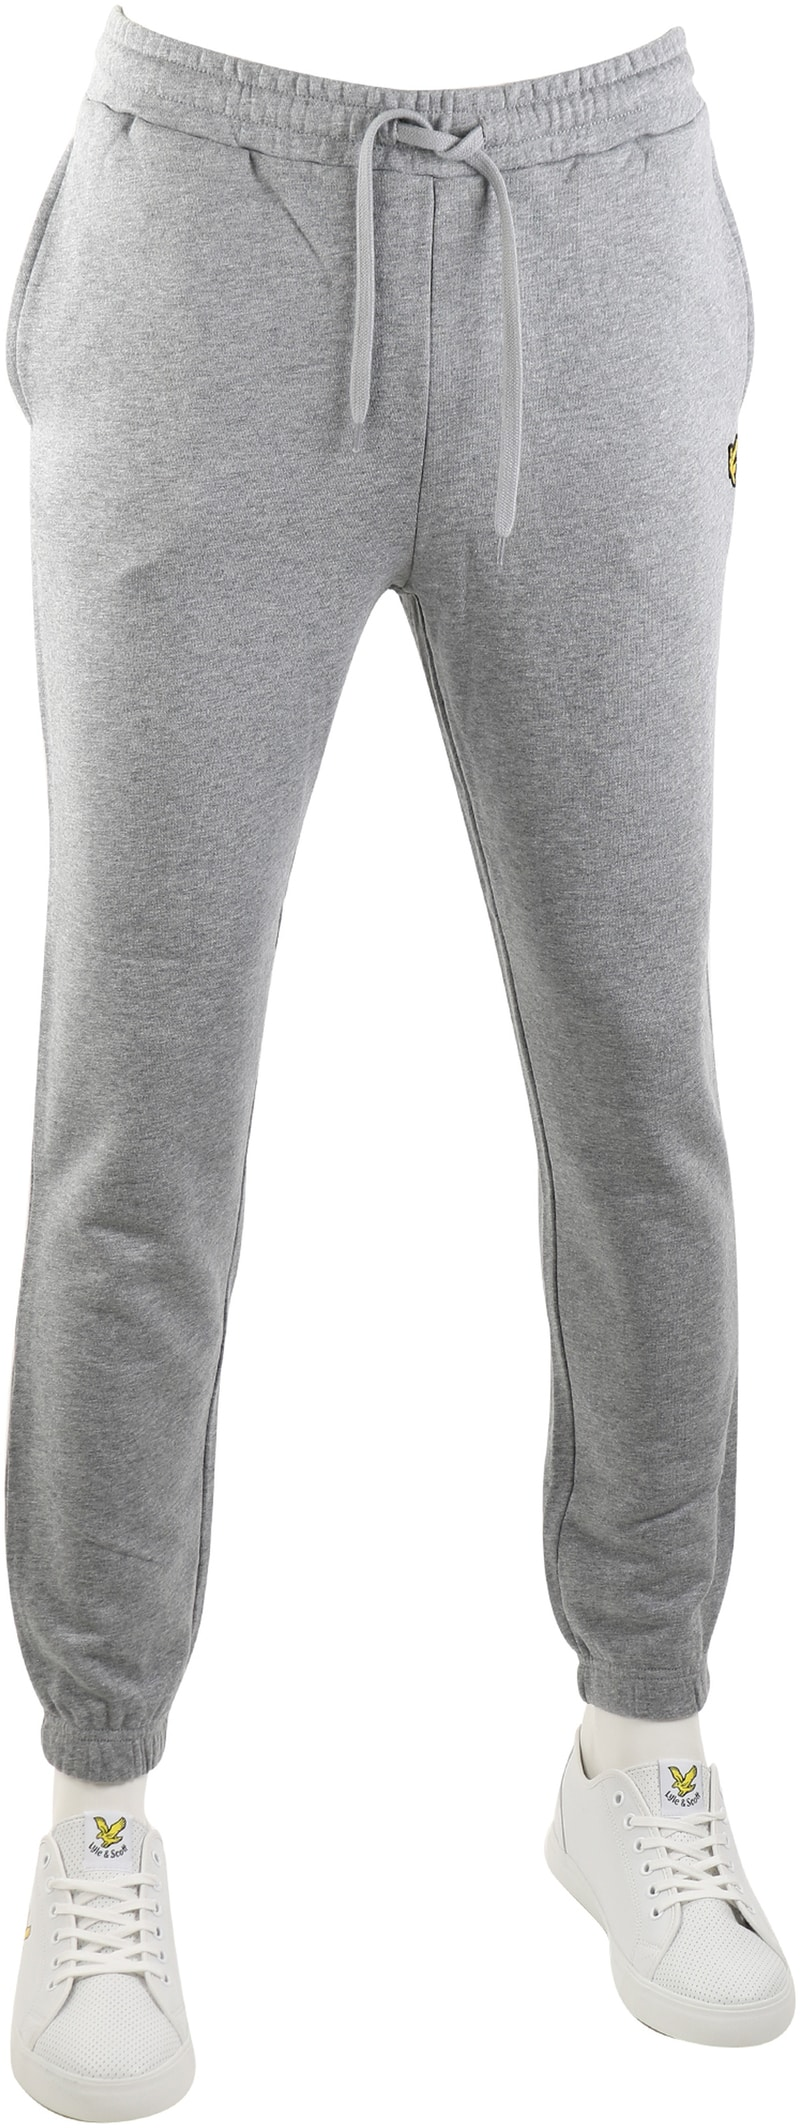 Lyle & Scott Joggingbroek Grijs  online bestellen | Suitable